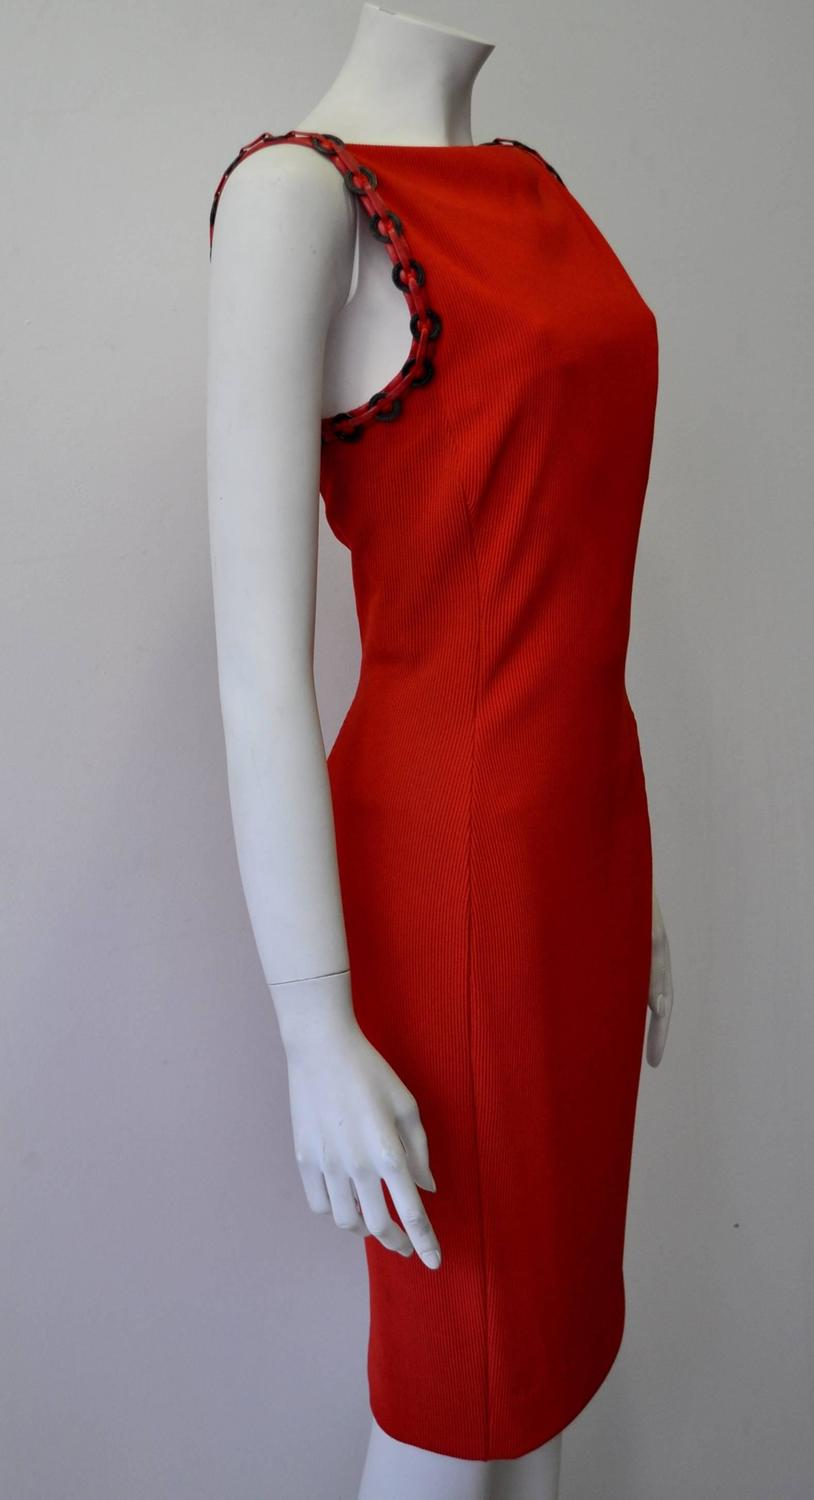 Vintage Watches For Sale >> Iconic Gianni Versace Couture Red Siren Bodycon Dress For Sale at 1stdibs